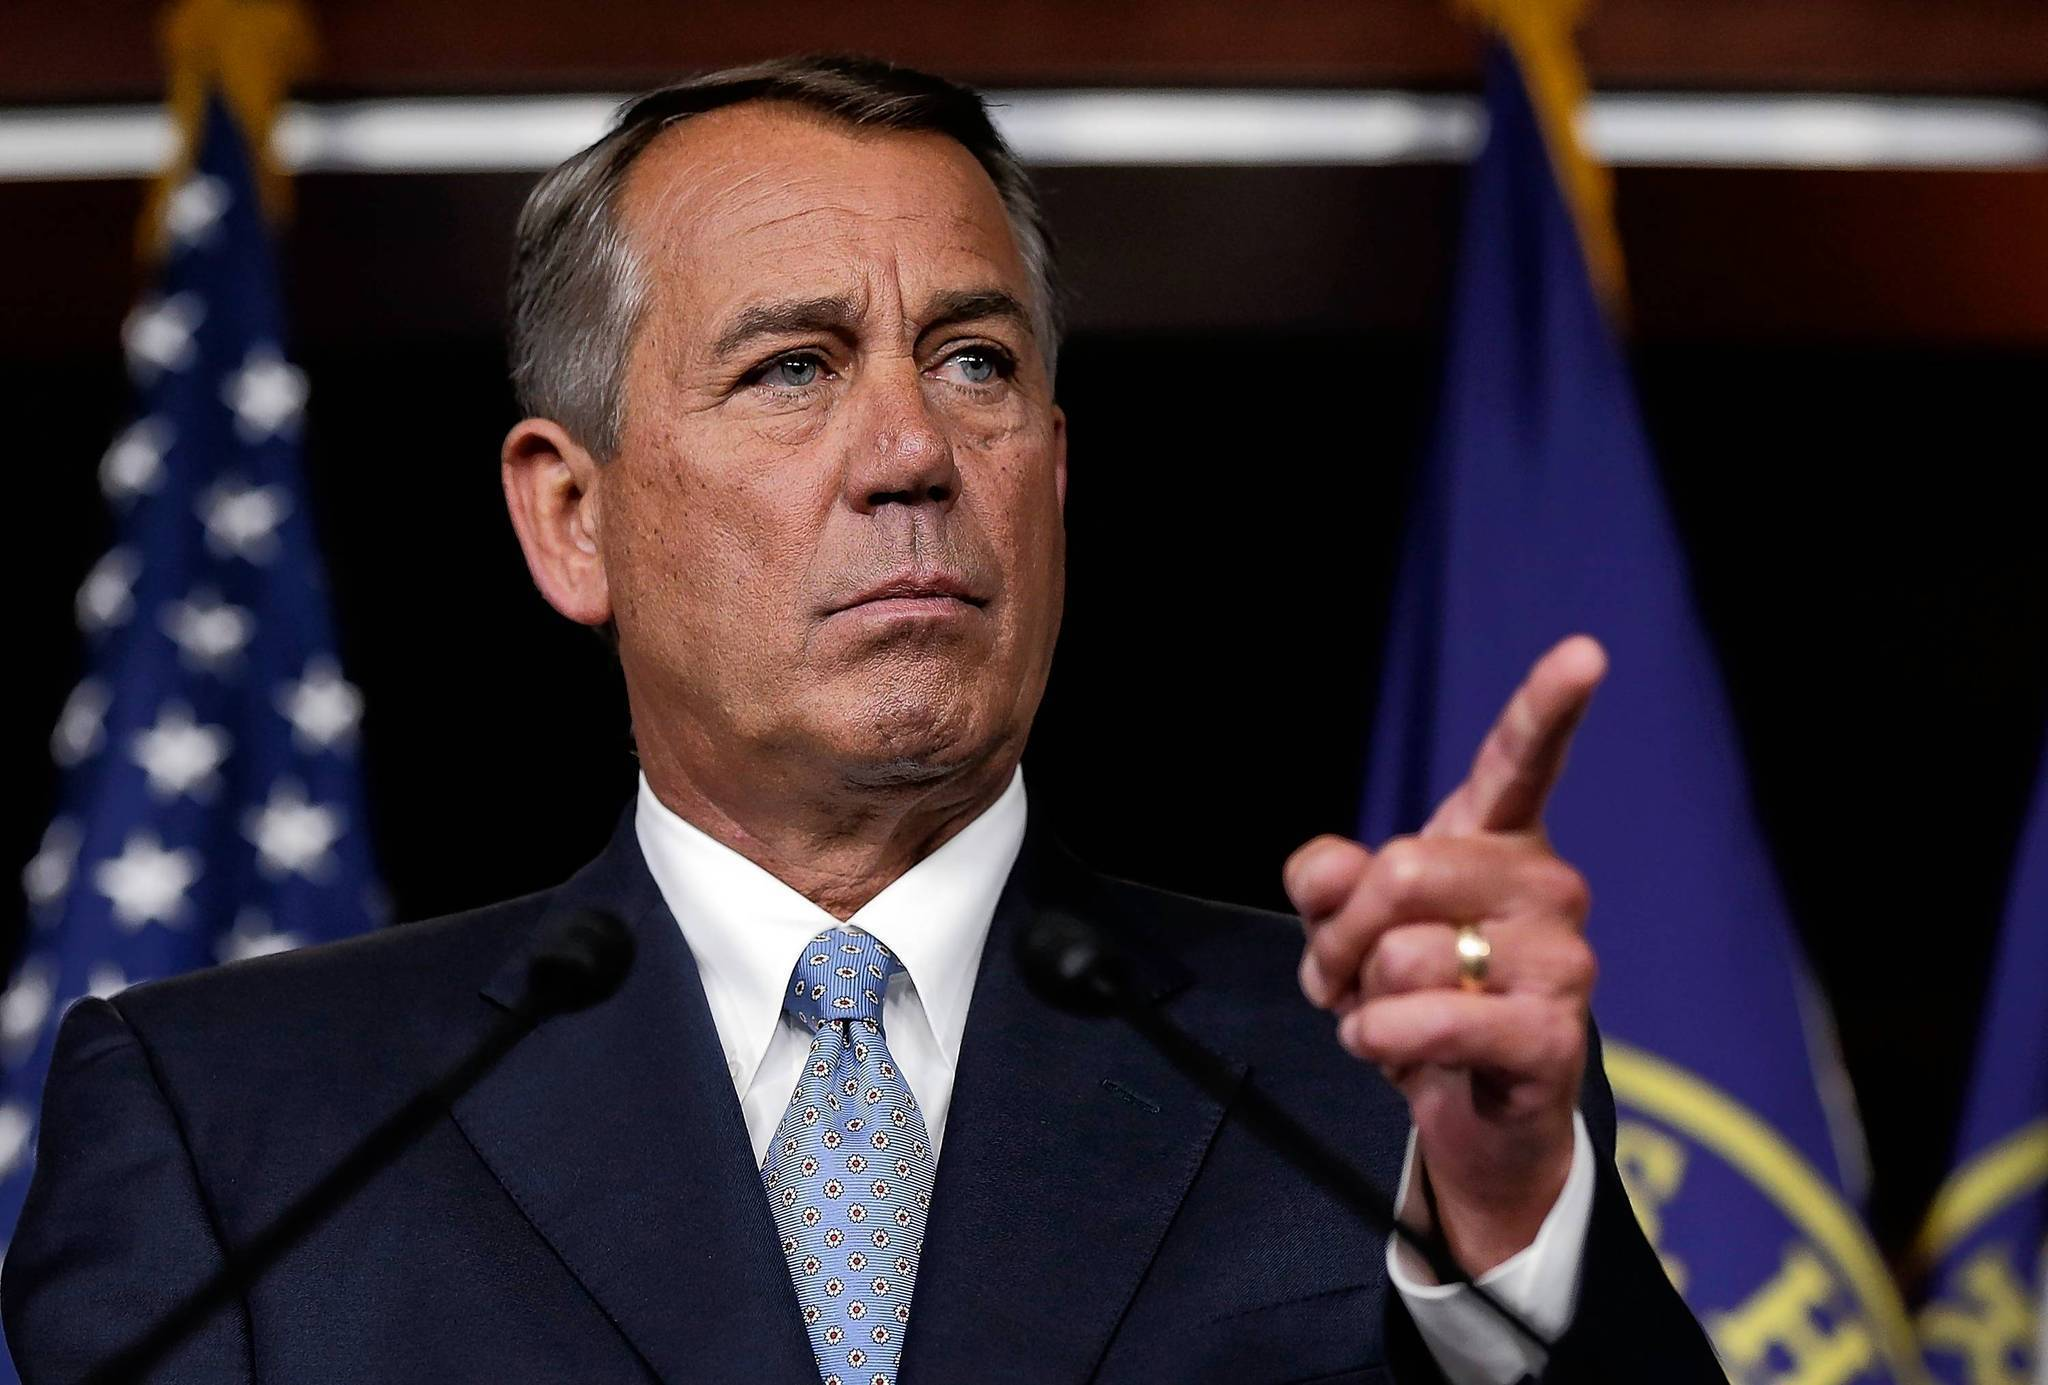 "House Speaker John Boehner, R-Ohio, had a bad year. Democrats chided him for getting little done but holding 40 meaningless votes to repeal Obamacare. Senate Majority Leader Harry Reid, D-Nev., called Boehner, ""A coward! He's a coward!"" Tea partyers threatened to dump Boehner as speaker. The three moderate Republicans left just shook their heads. ""I'm what you'd call a regular guy with a big job,"" Boehner said. Later he said disconsolately, ""I need this job like I need a hole in the head."""